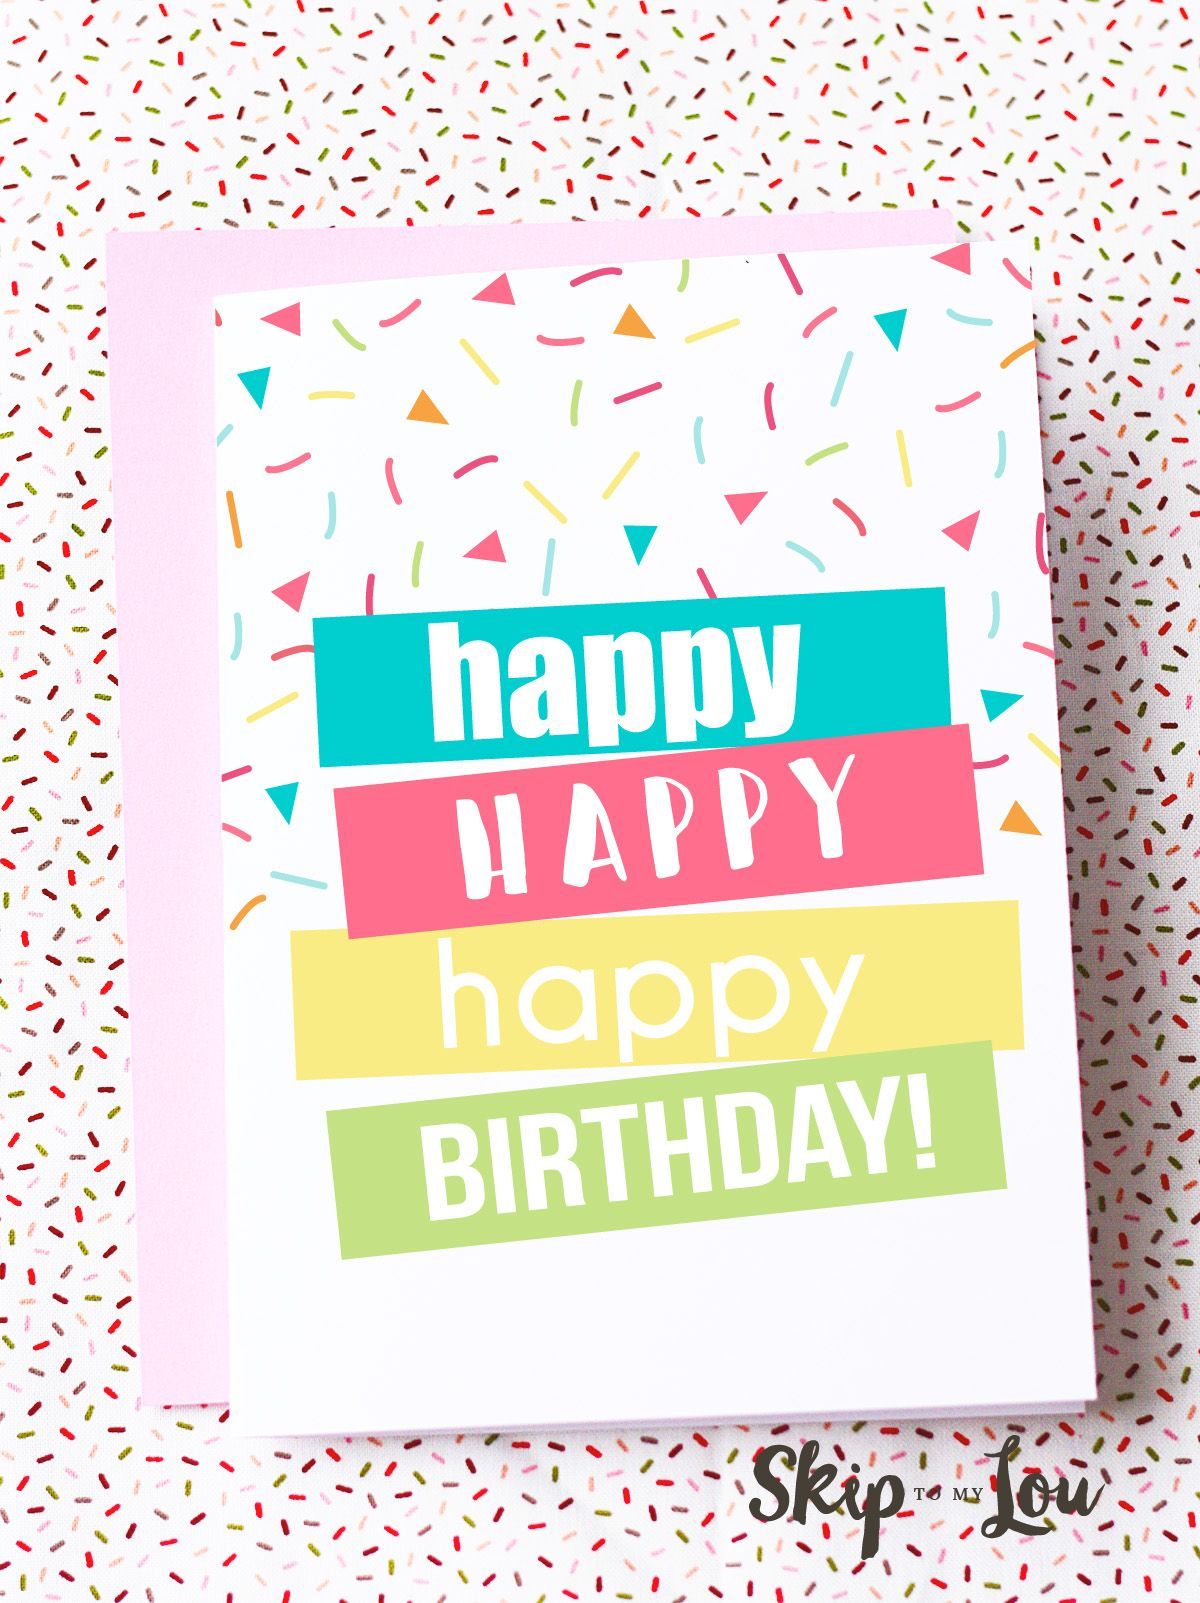 Stupendous Free Printable Happy Birthday Card Need A Last Minute Birthday Funny Birthday Cards Online Overcheapnameinfo